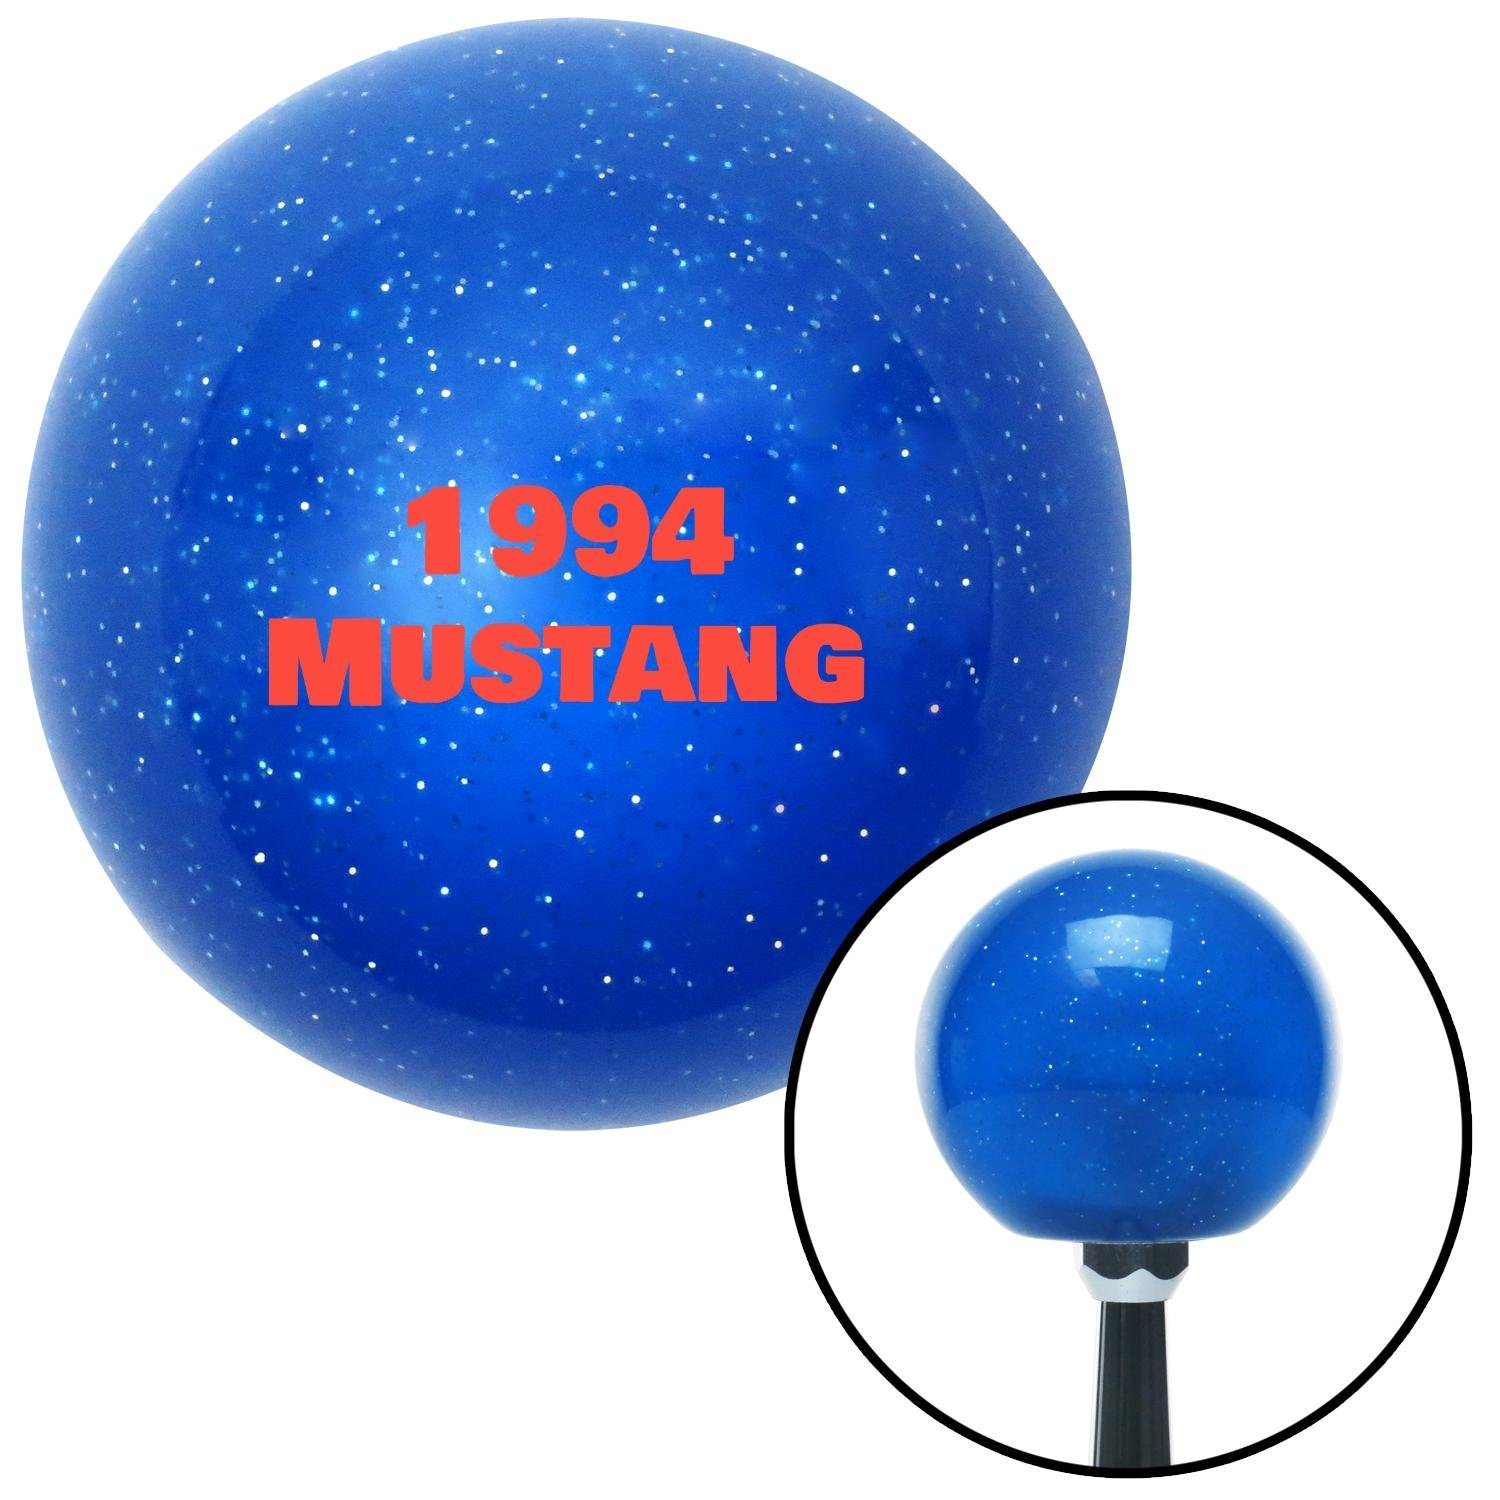 American Shifter 140995 Blue Metal Flake Shift Knob with M16 x 1.5 Insert Red 1994 Mustang